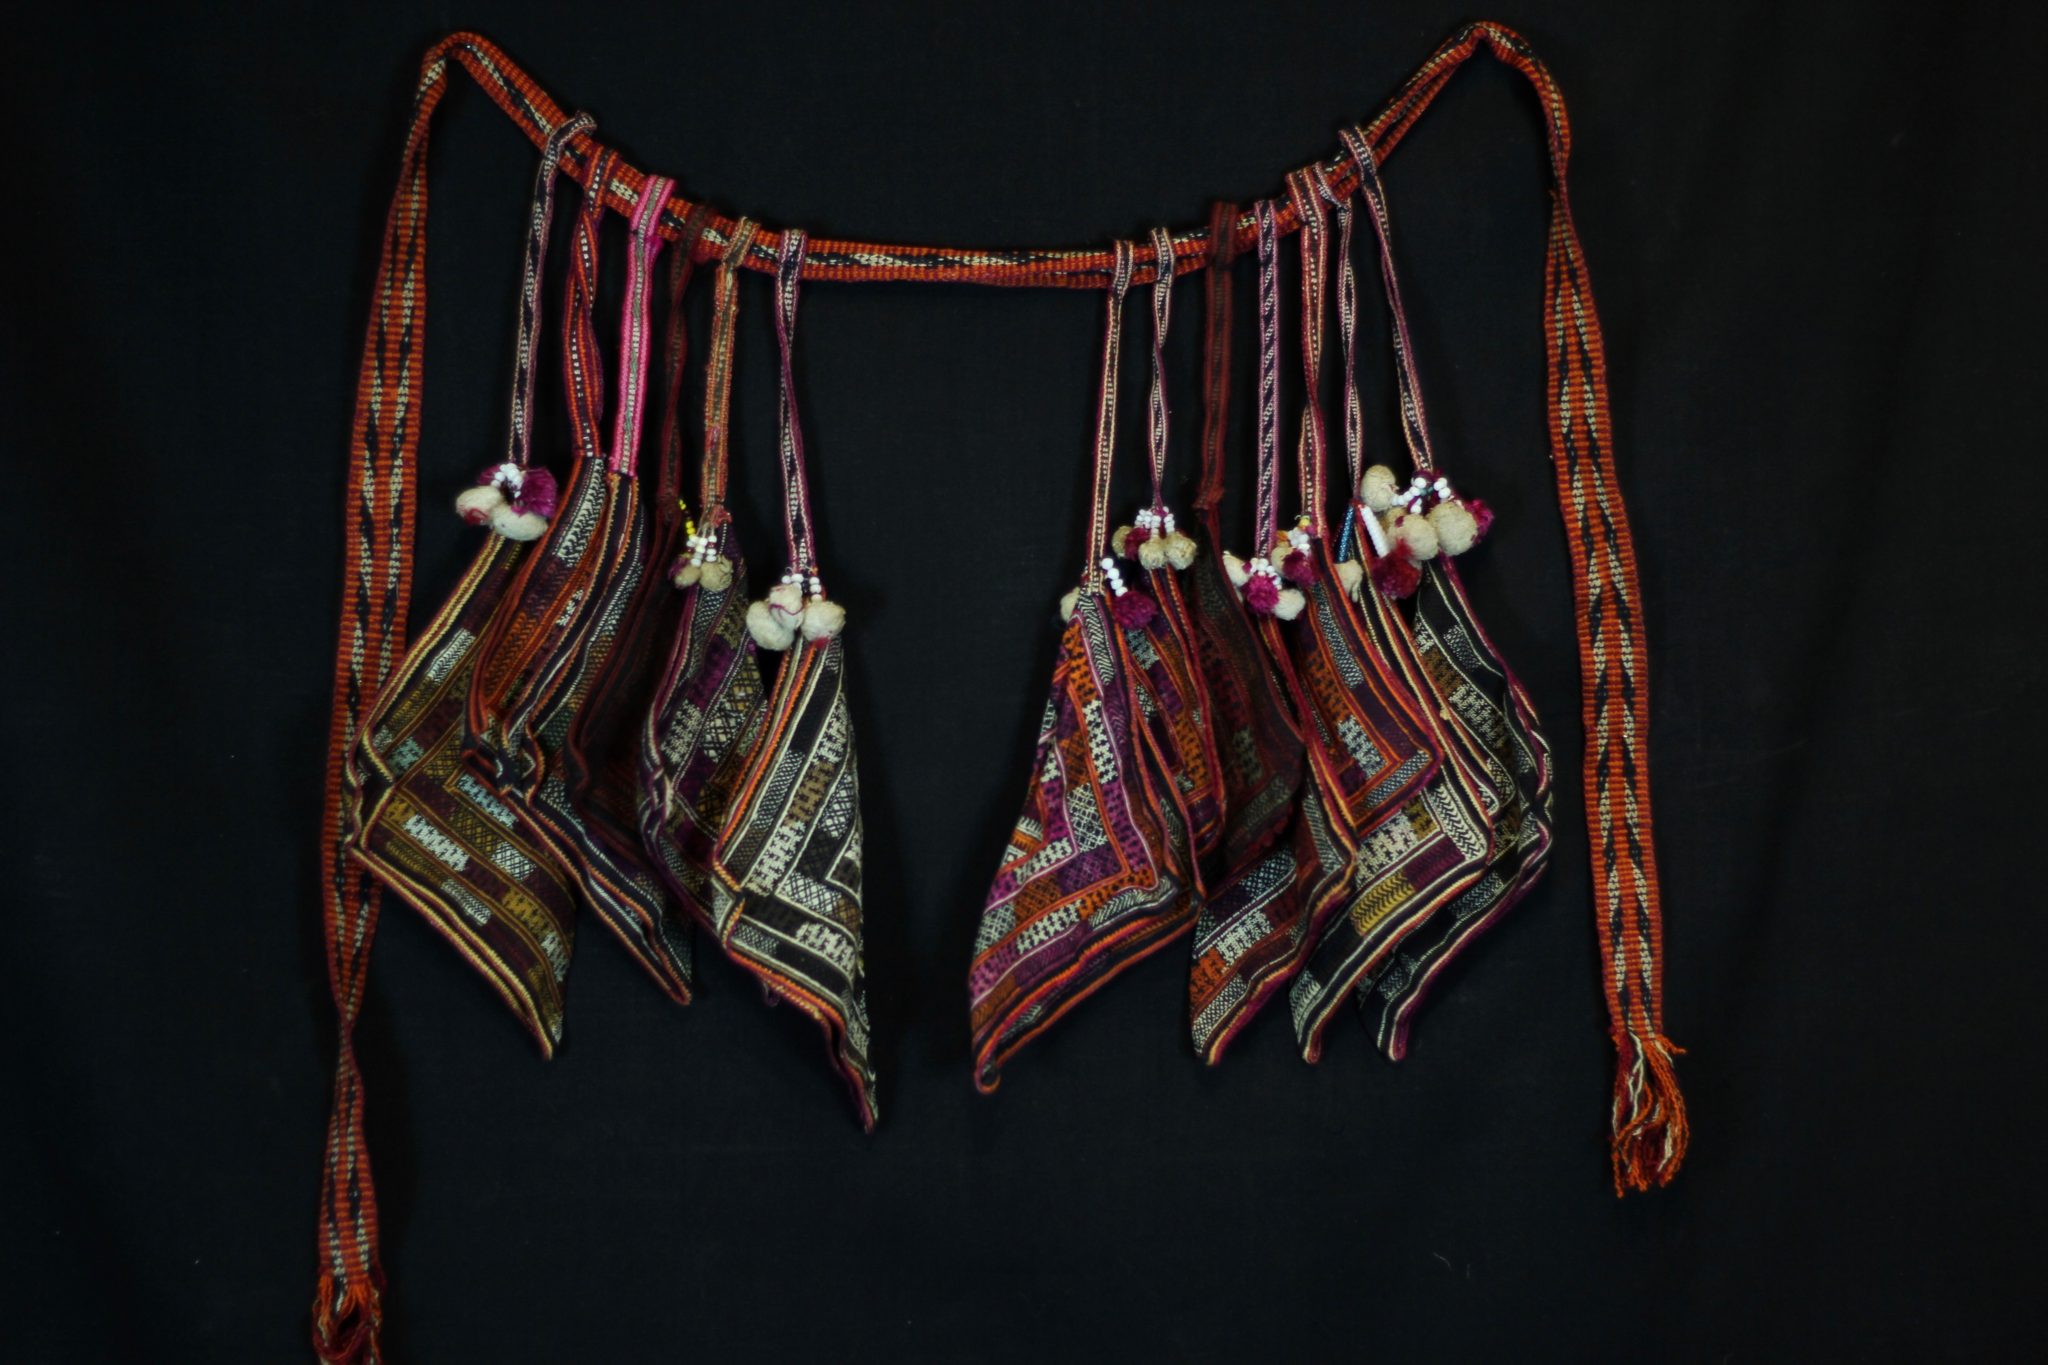 """Shamanic Belt with full set of 12 Handkerchiefs, Da Bac district, Hoa Binh province, Vietnam, Tight Trouser Dao people, Early to mid 20th c. Cotton, hand embroidered with silk. Worn by shaman while performing religious rituals. A complete belt would have a minimum of 12 handkerchiefs (embroidered squares). The belt is passed down through generations, revealing its history. If a shaman has two sons or apprentices, he will spit the belt and the new shaman's wife will make the other necessary handkerchiefs. 75"""" x 18"""" x 2 ½"""", $775."""